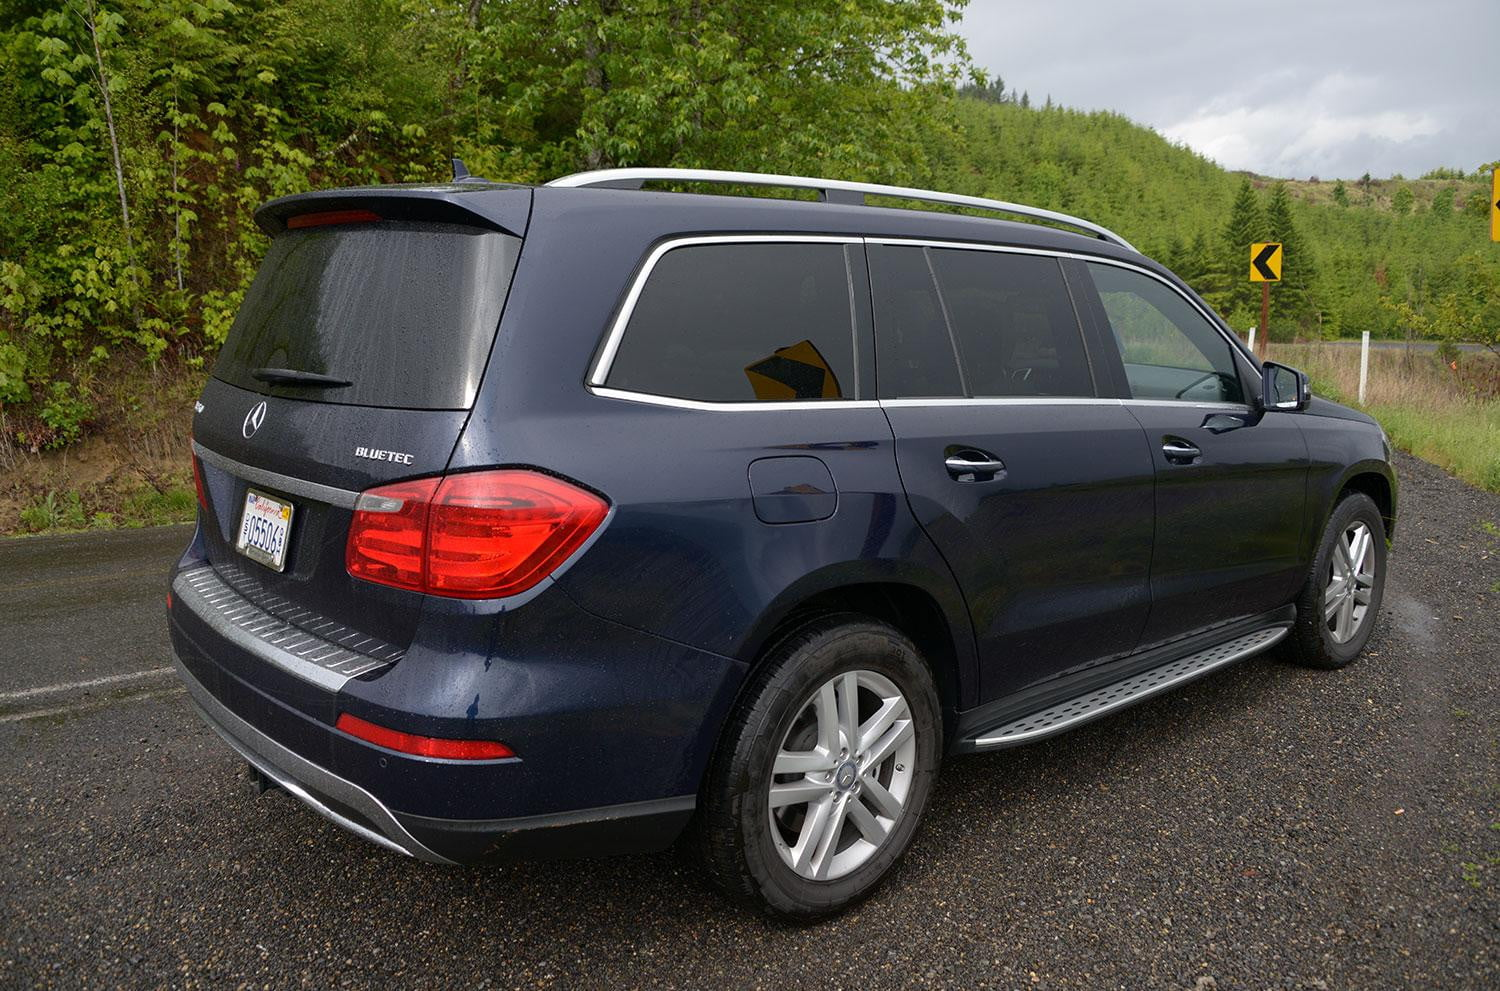 2013 mercedes gl350 bluetec review digital trends for Mercedes benz gas chambers